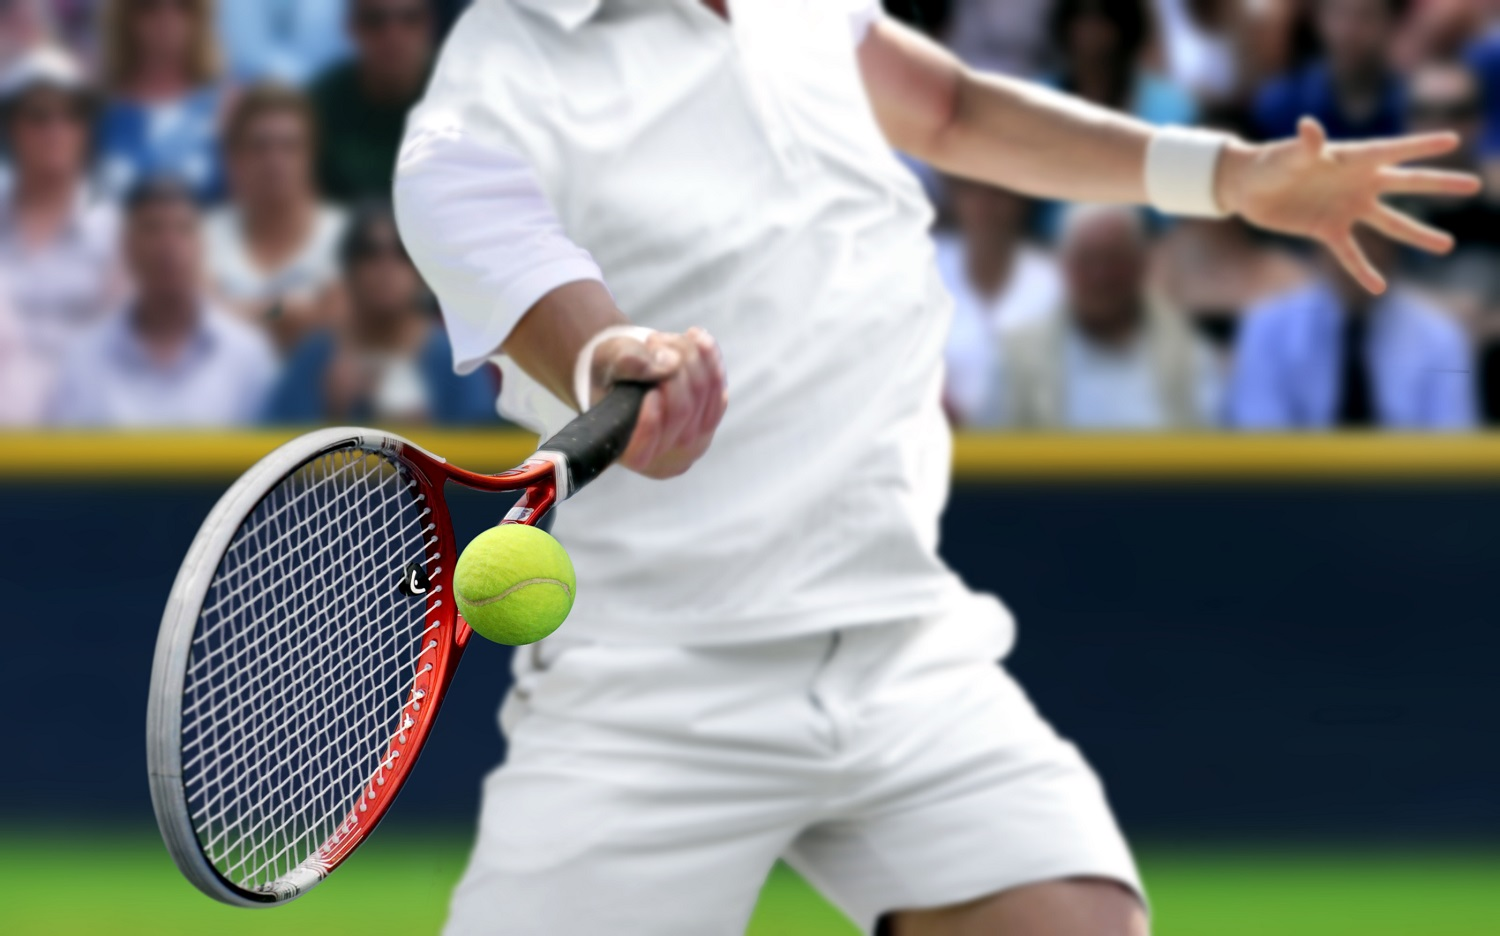 Male tennis player with forehand  racquet swing hitting ball